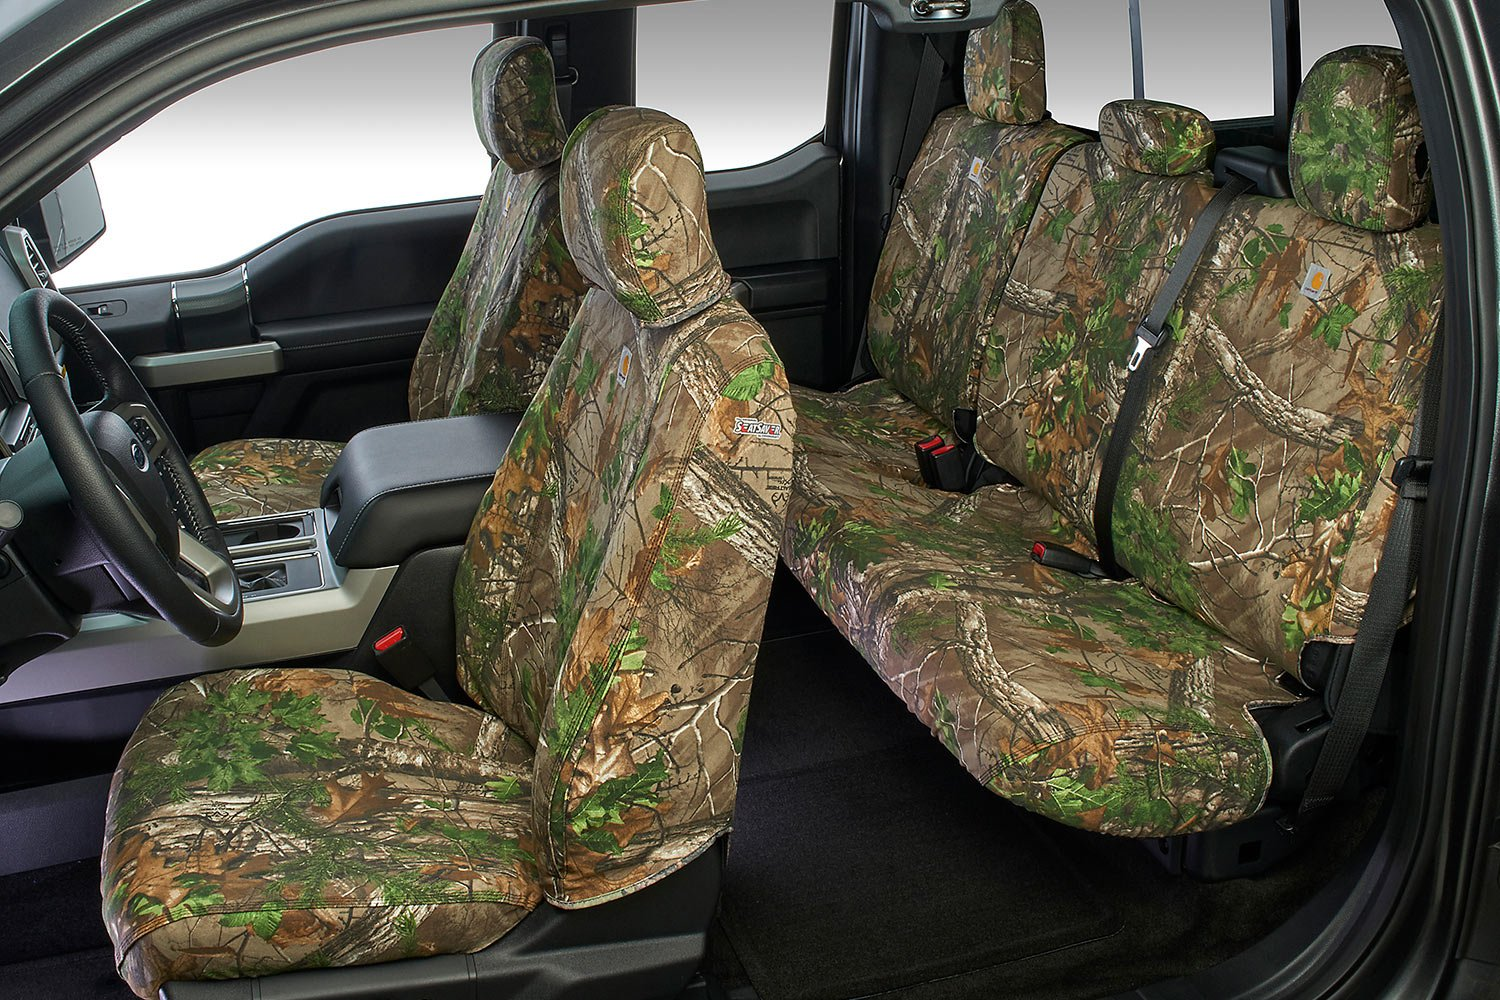 Jeep Wrangler Seat Covers >> Carhartt Realtree Camo Seat Covers - Free Shipping